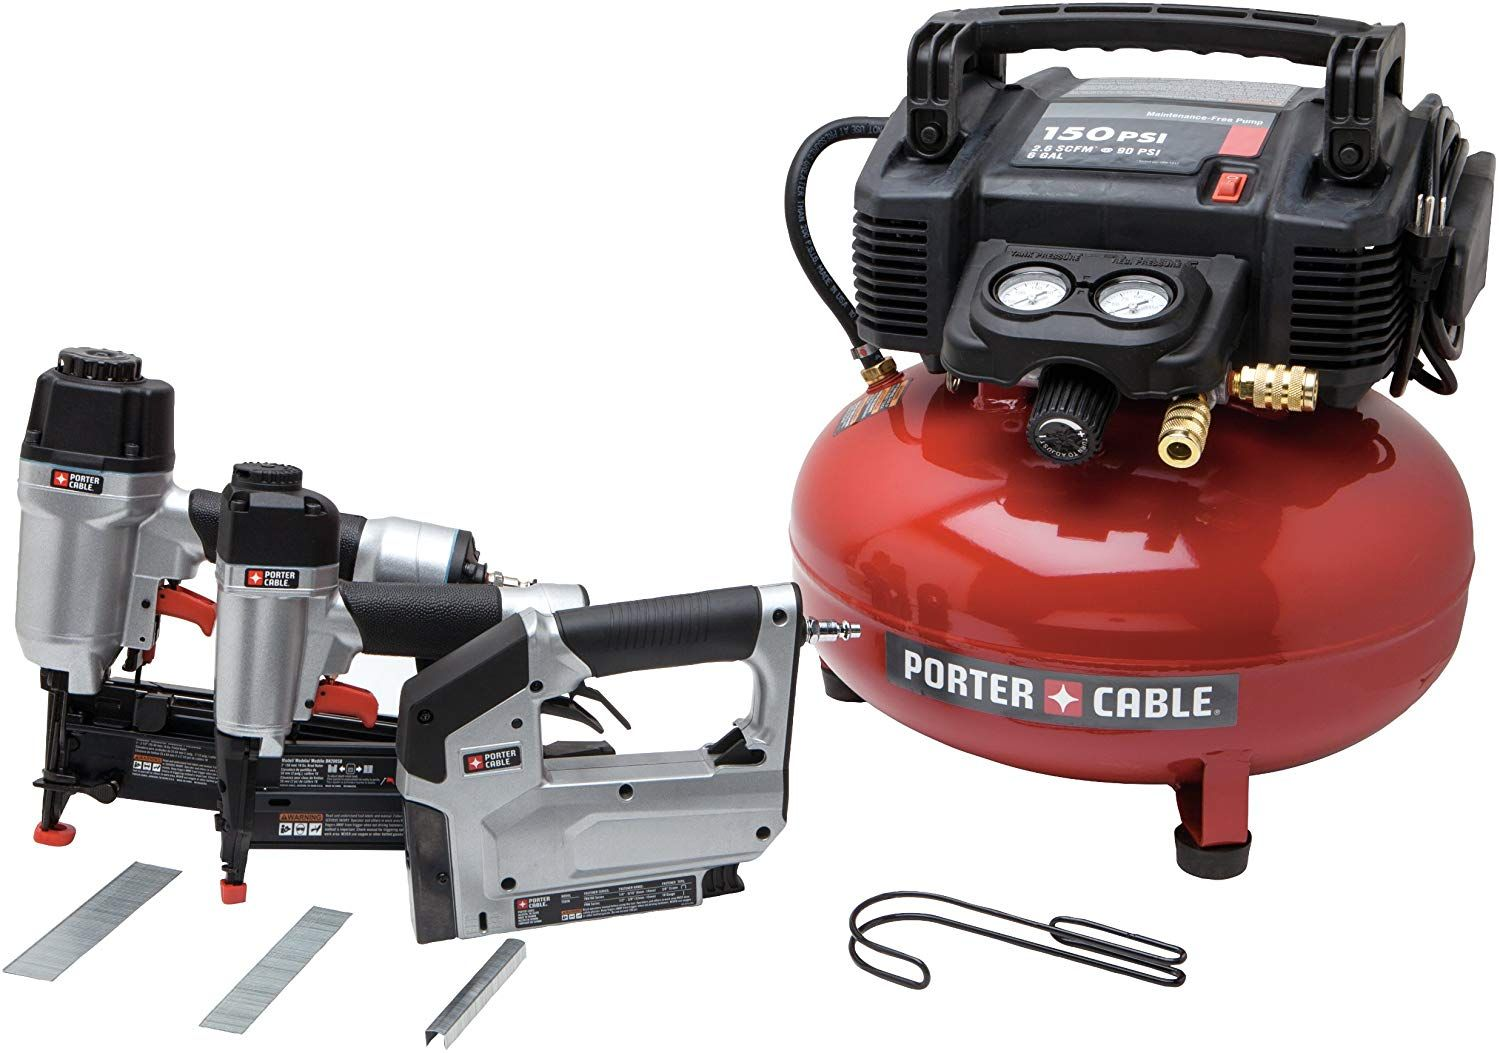 PORTERCABLE PCFP12234 3Tool Combo Kit in 2020 Combo